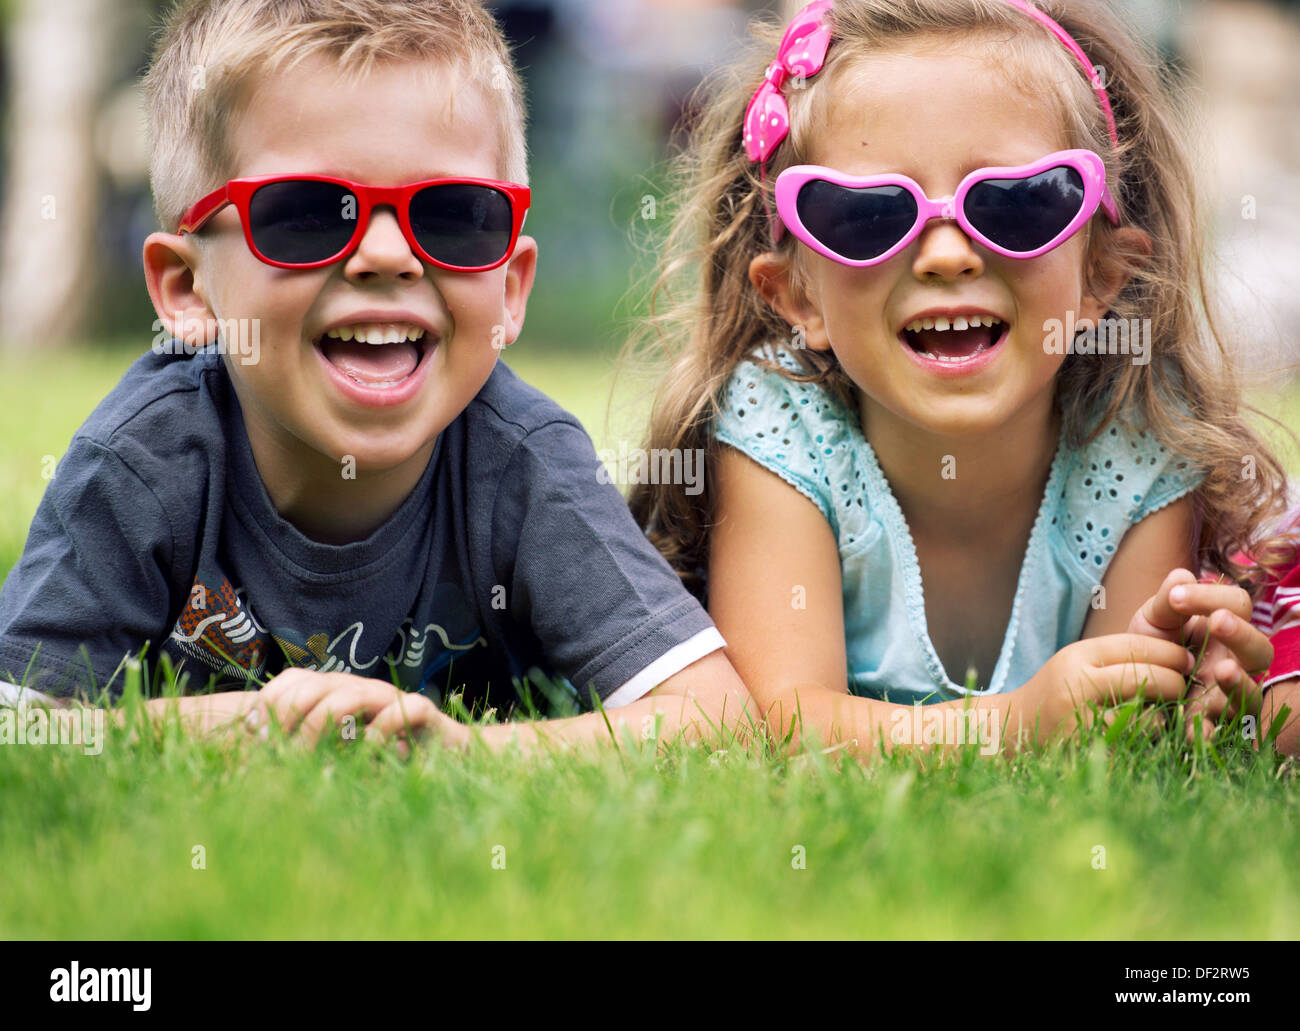 Cute small children with fancy sunglasses - Stock Image